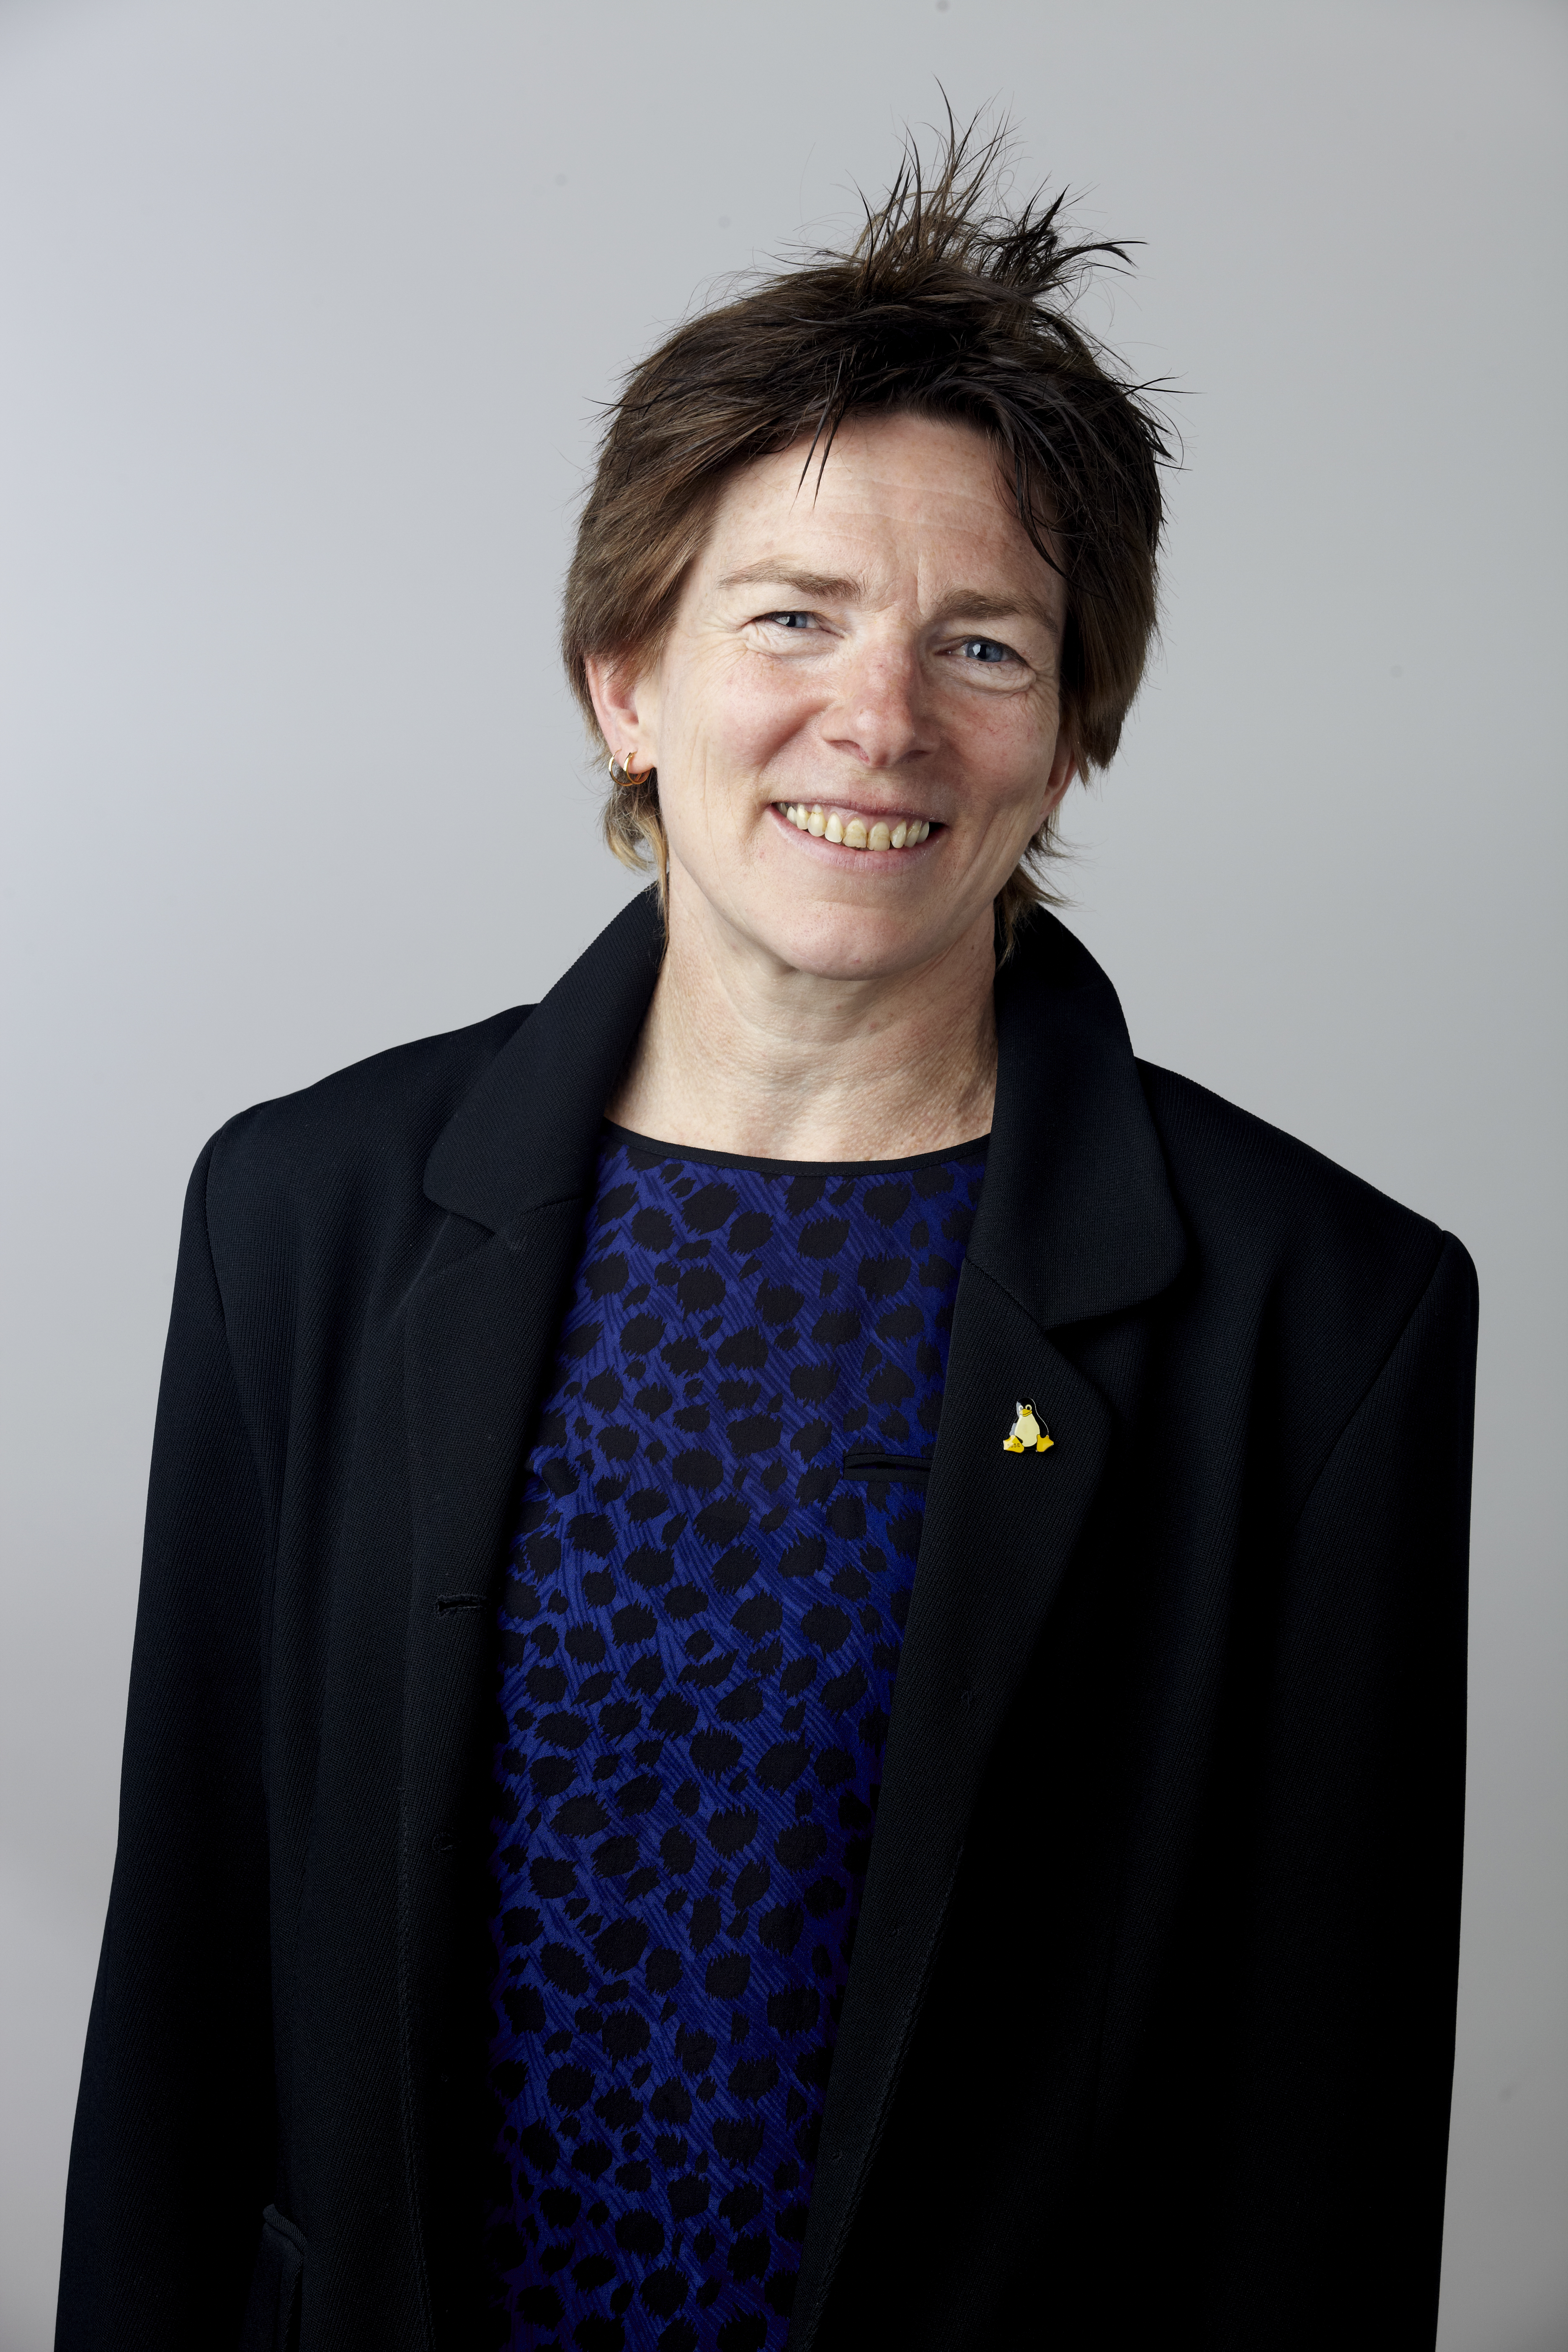 Jenny Nelson at [[Royal Society]] admissions day in London, July 2014